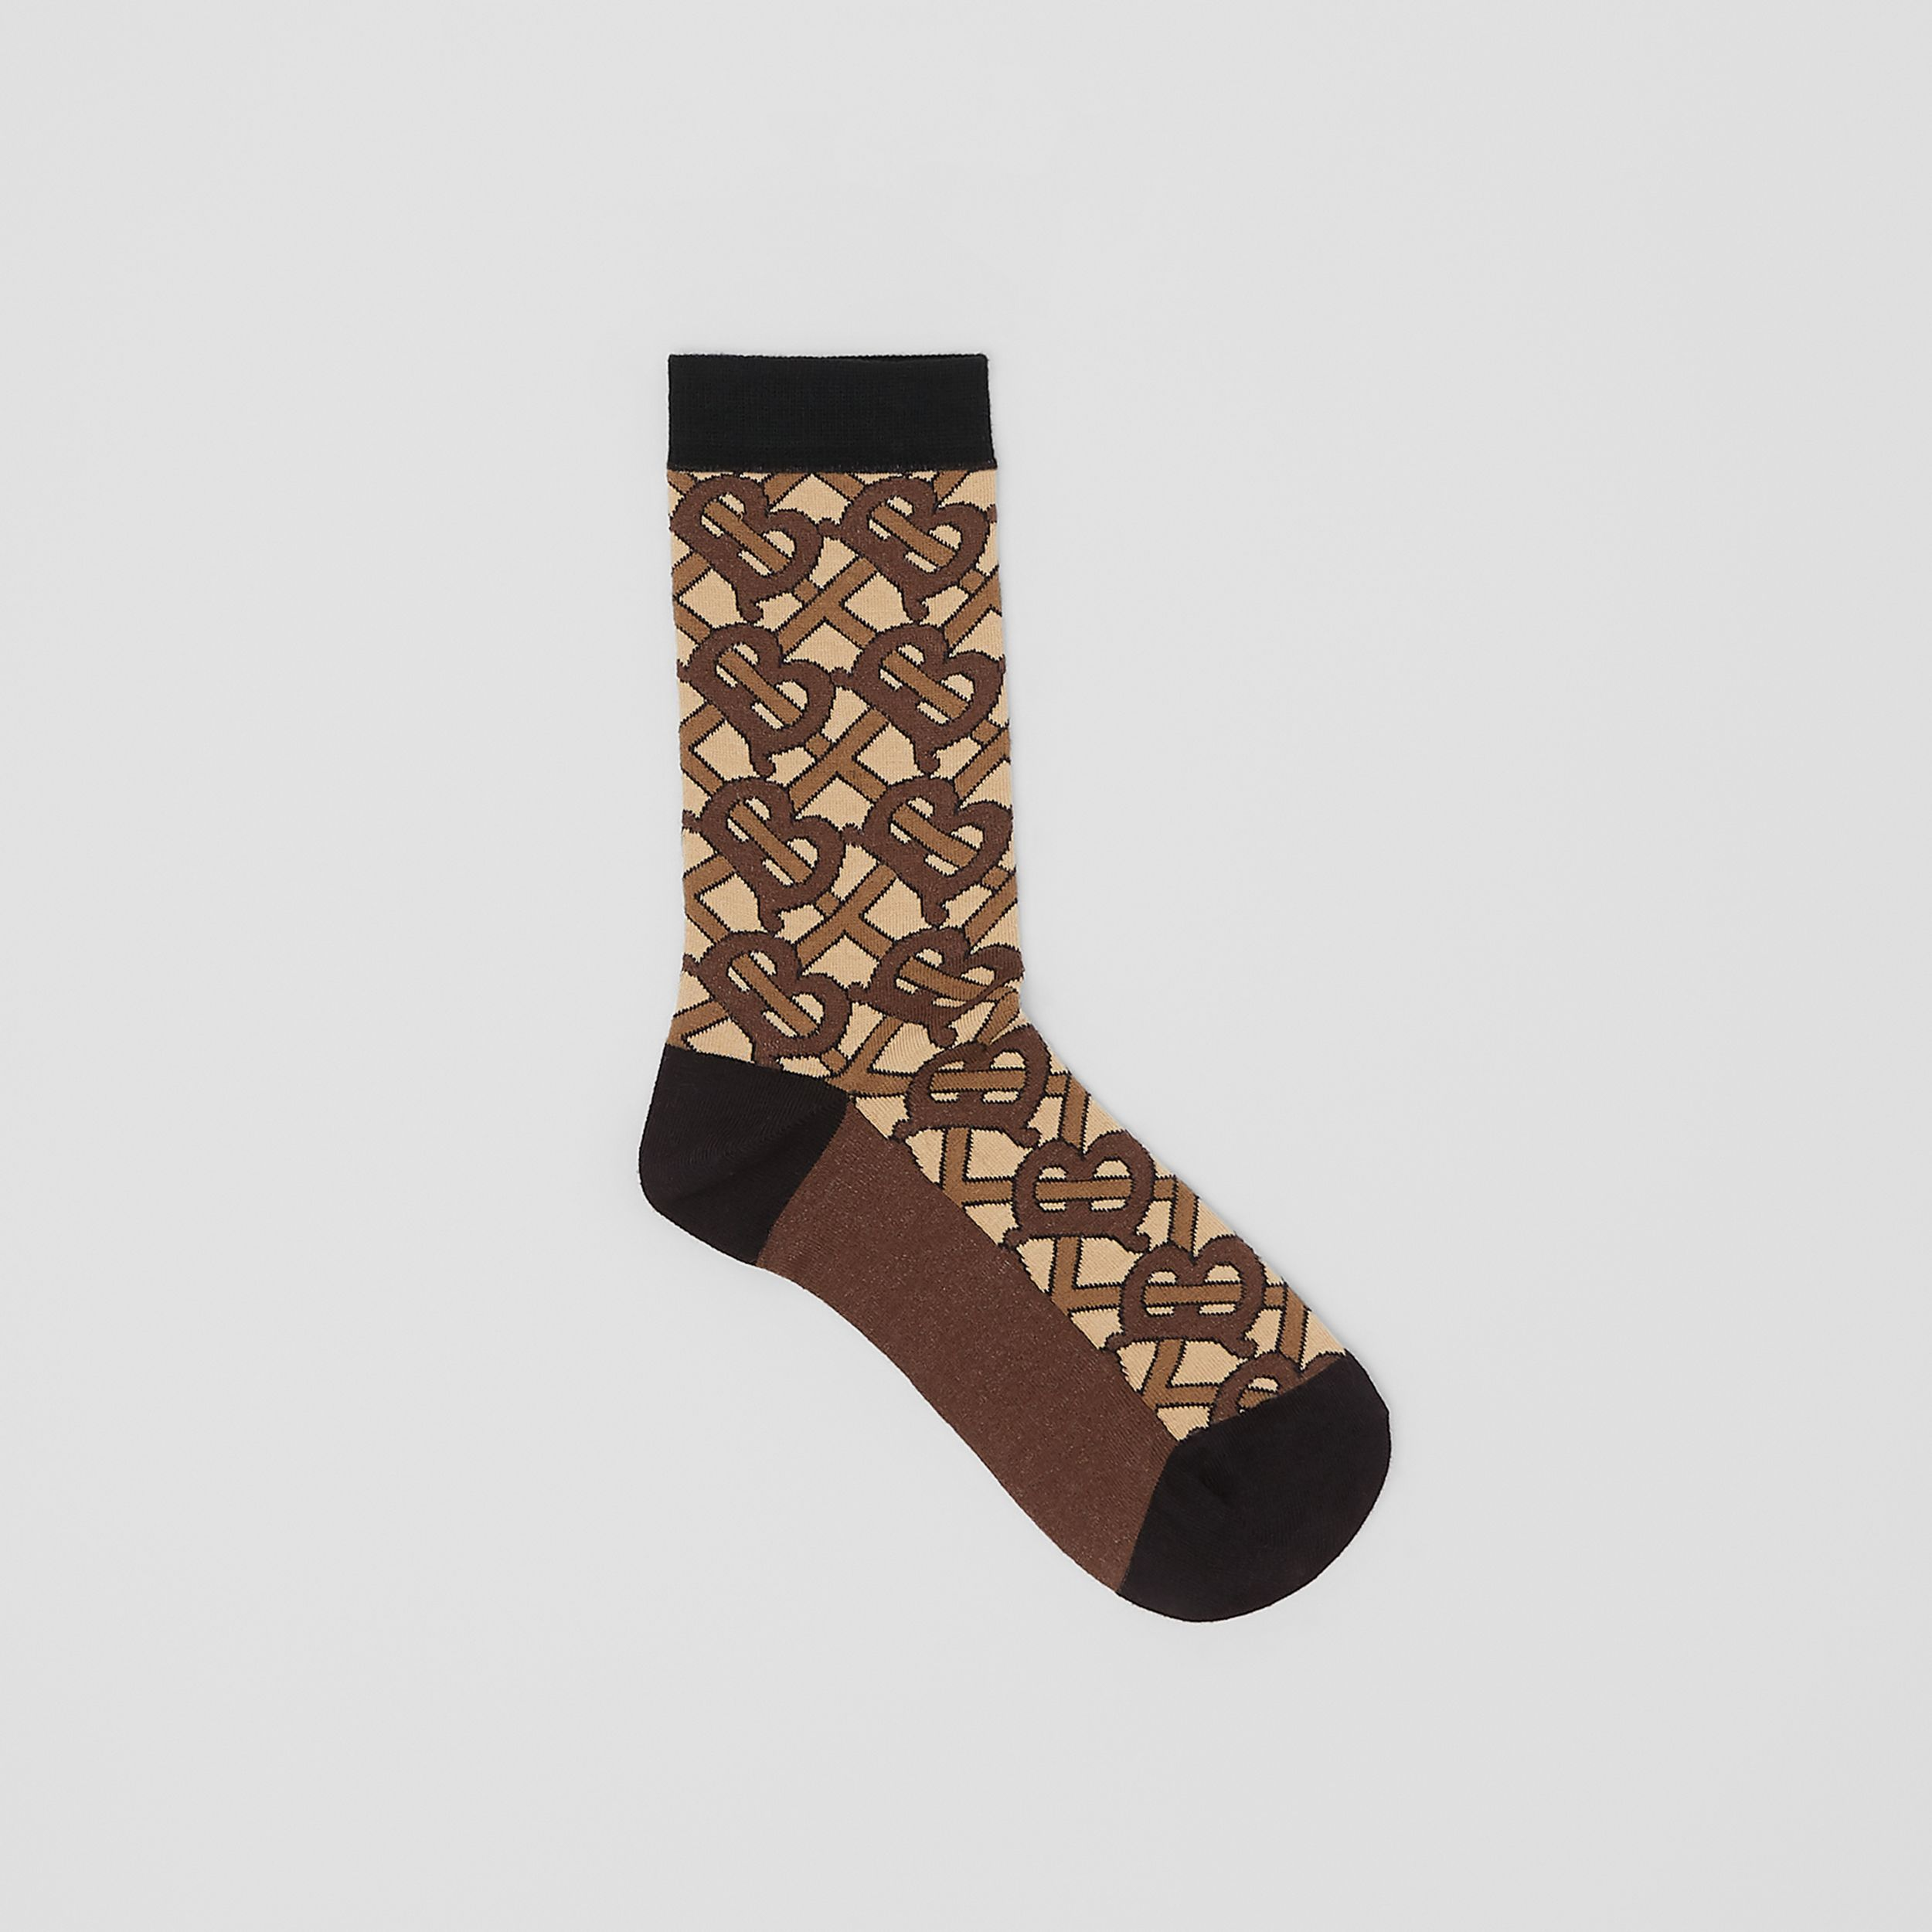 Monogram Intarsia Cotton Blend Socks in Bridle Brown | Burberry - 1